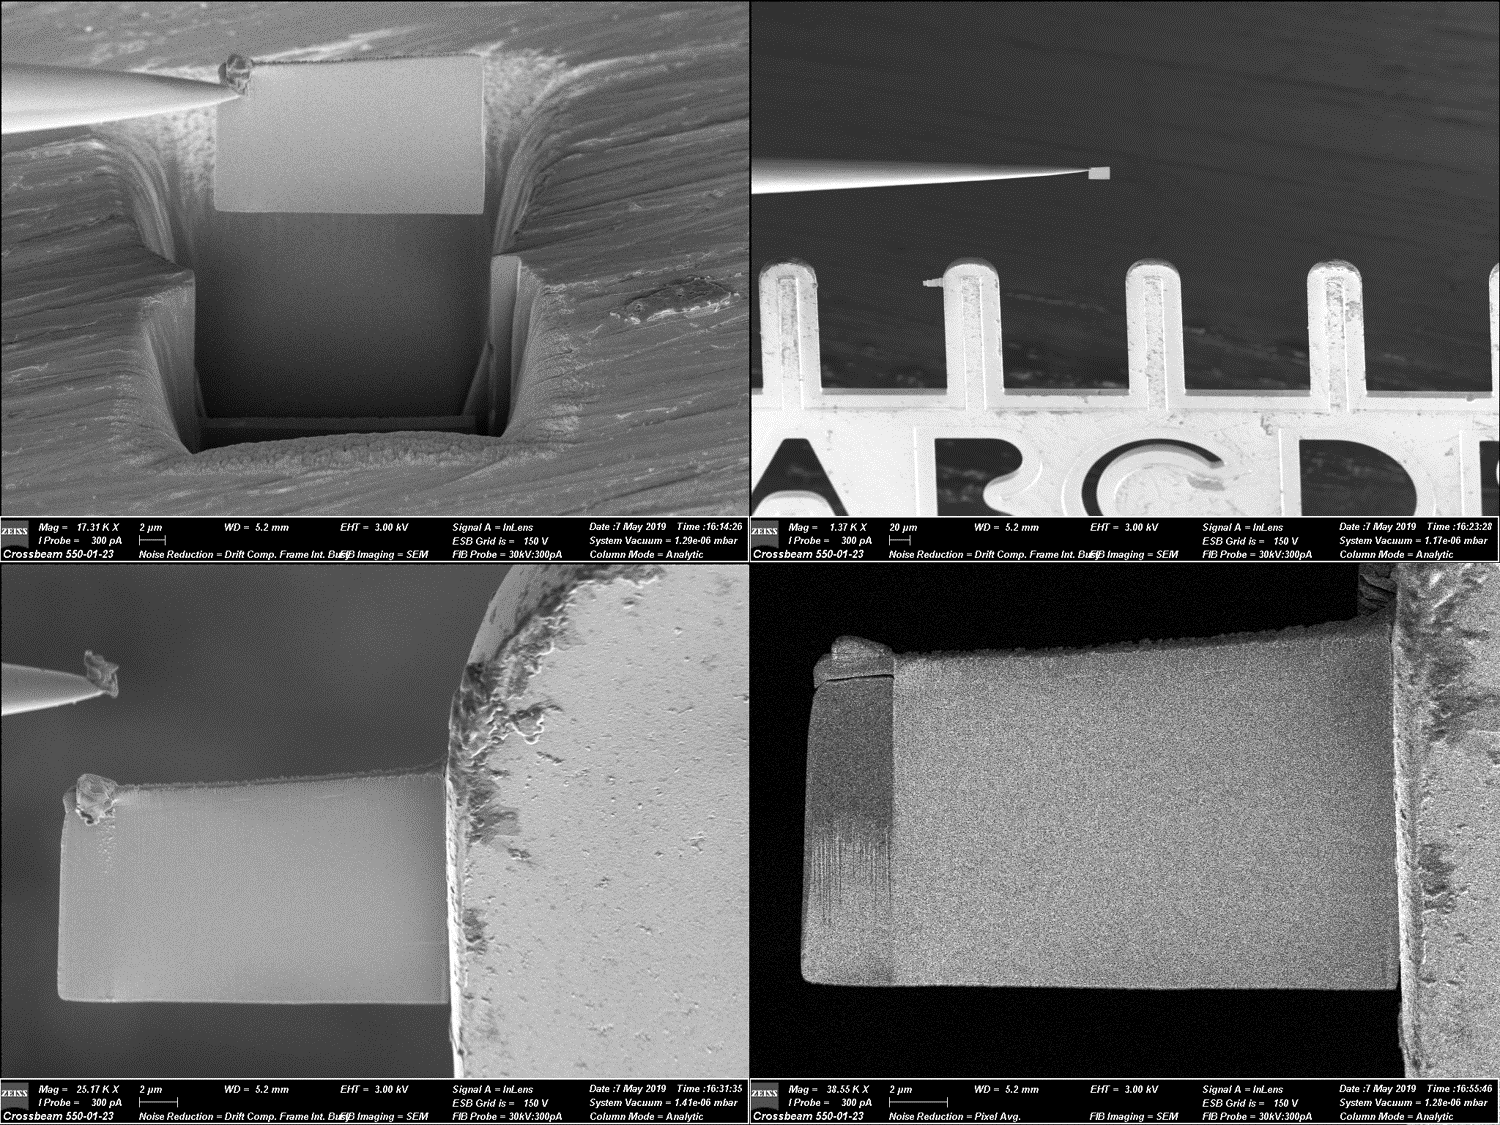 Four images showing the stages of an in-situ liftout for TEM sample preparation.